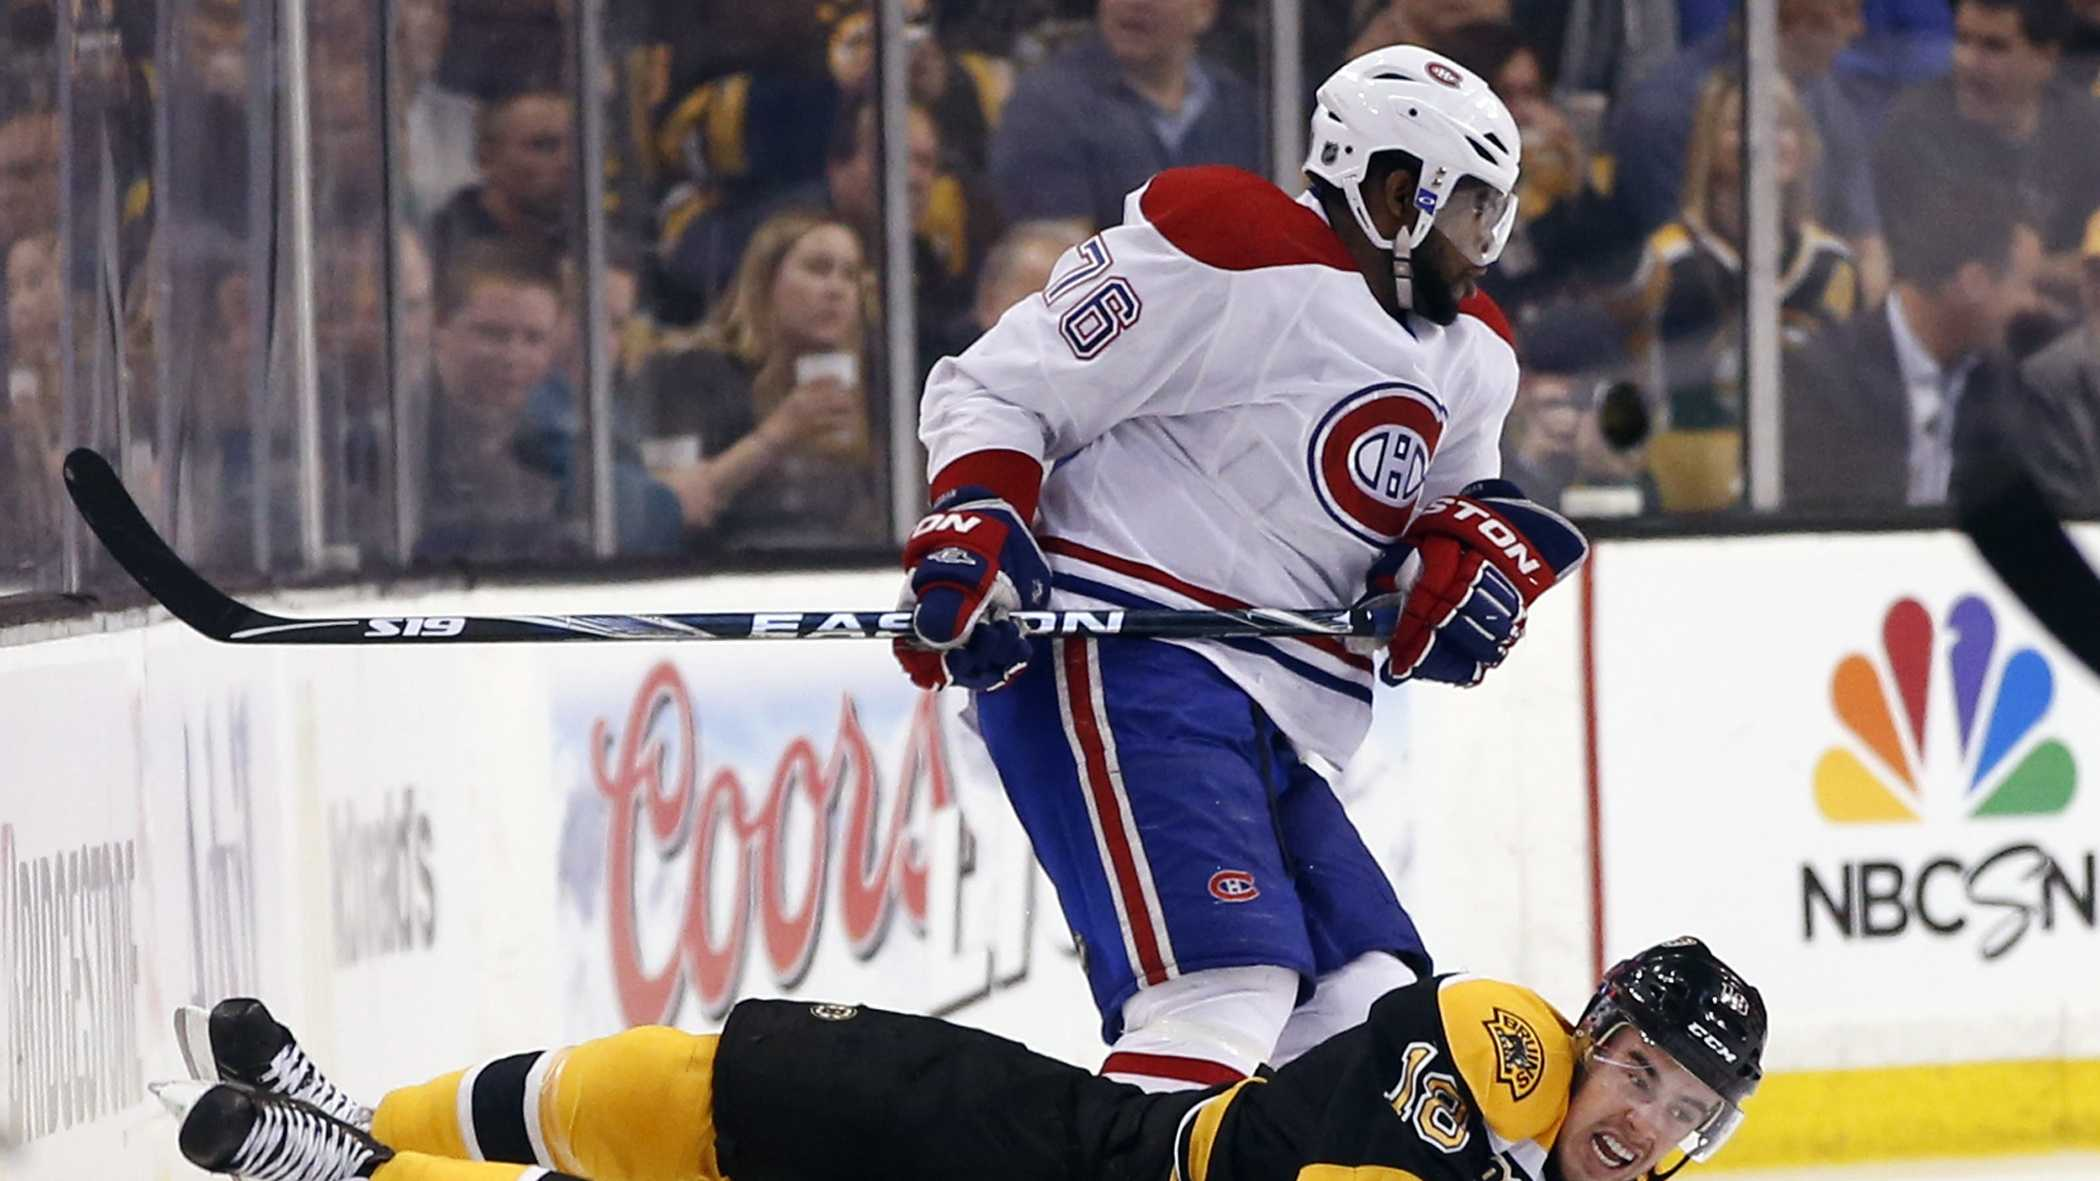 Boston Bruins right wing Reilly Smith (18) falls to the ice after crashing with Montreal Canadiens defenseman P.K. Subban (76) during the first period in Game 1 of an NHL hockey second-round playoff series in Boston, Thursday, May 1, 2014.